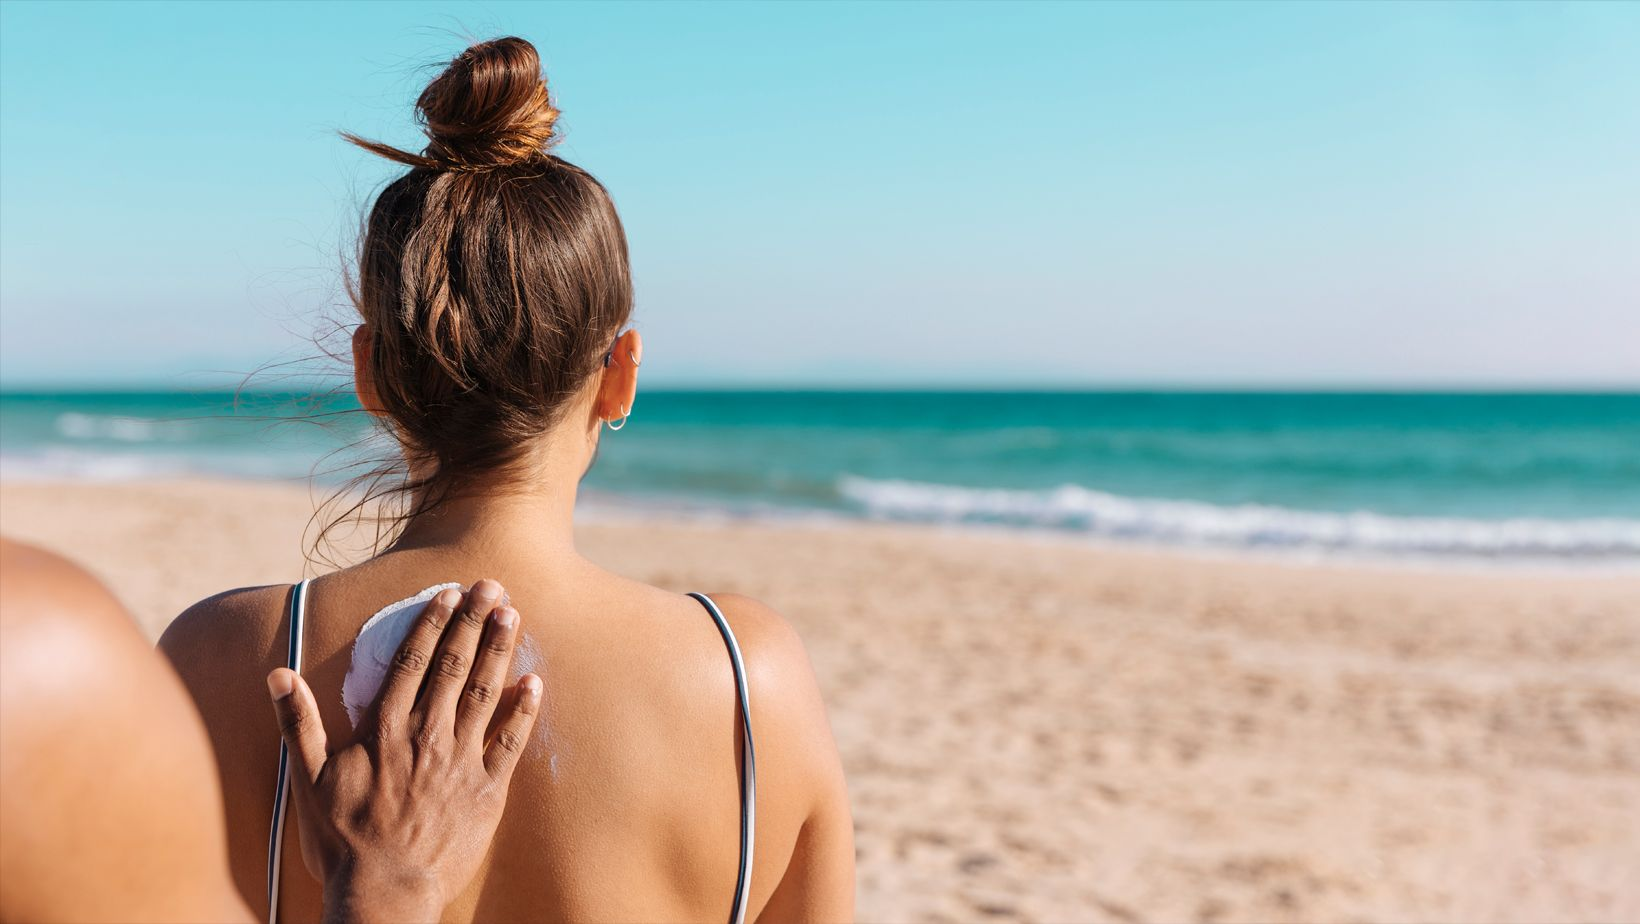 How to Prevent Sunburn and Sun Damage?